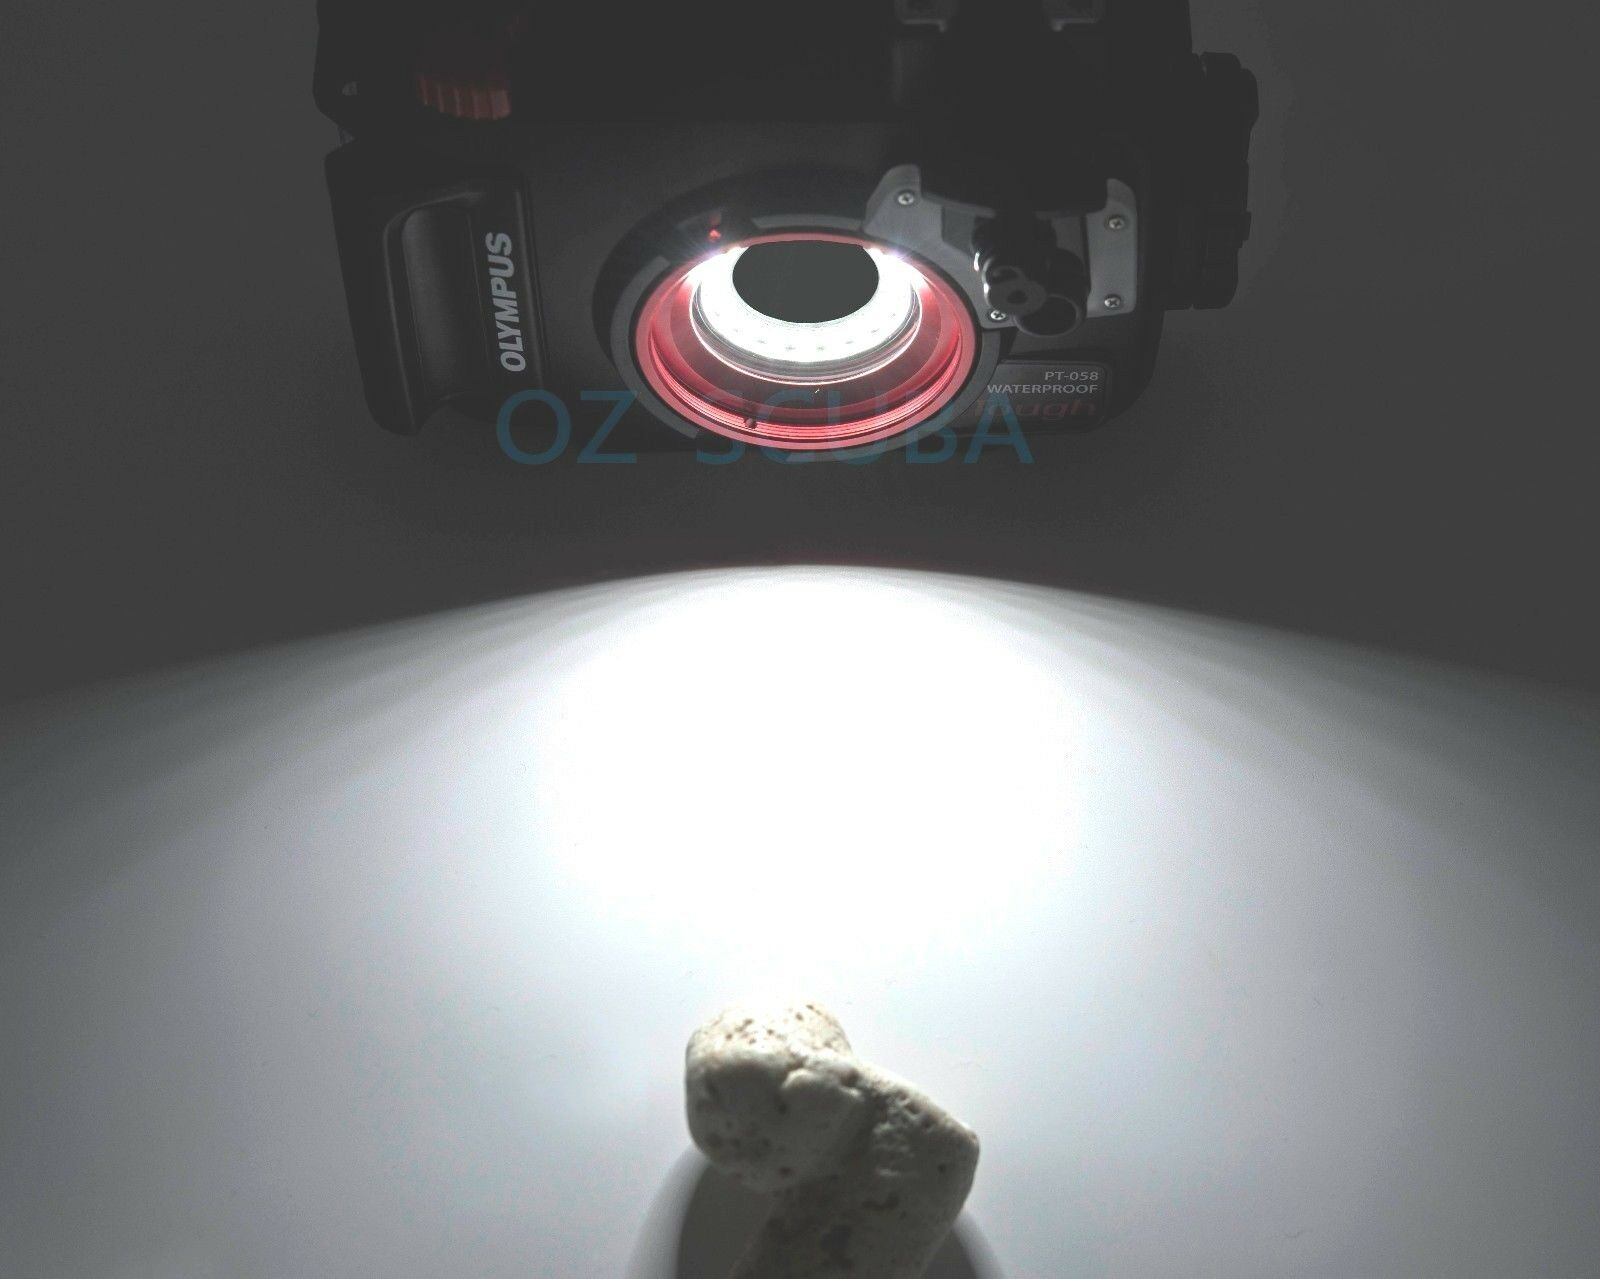 Olympus Tg 5 Pt 058 Underwater Housing Marco Led Ring Light New Tough Black Kamera Version 1 Of 11only 3 Available